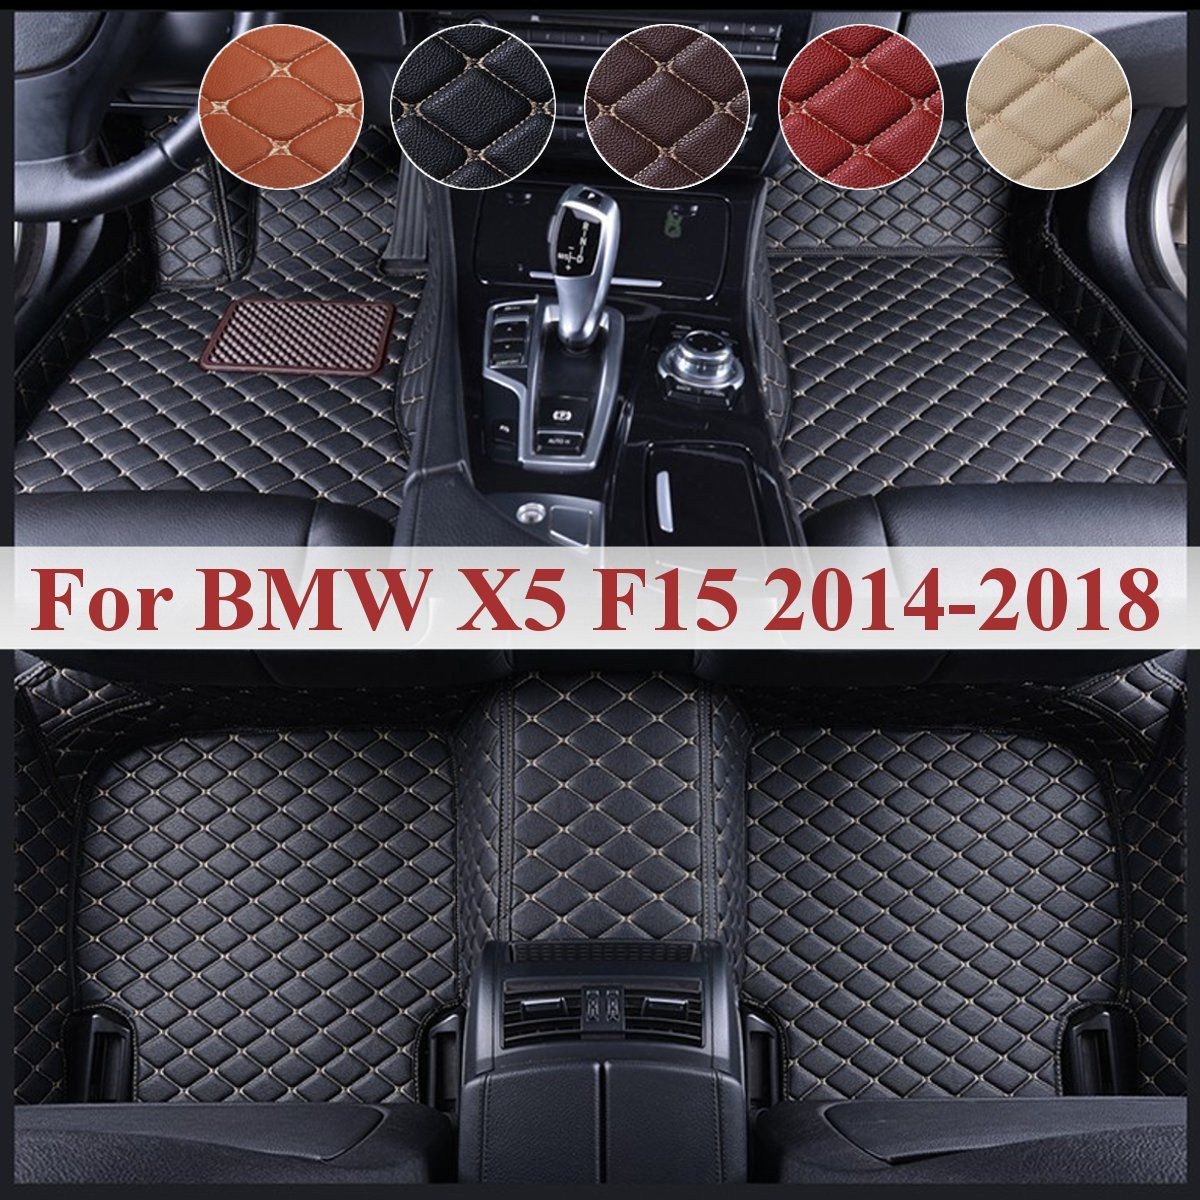 Car Front Rear PU Leather Floor Mats Set For BMW X5 F15 2014 2015 2016 2017 2018 Liner Waterproof 5 Seat Custom Foot Mats